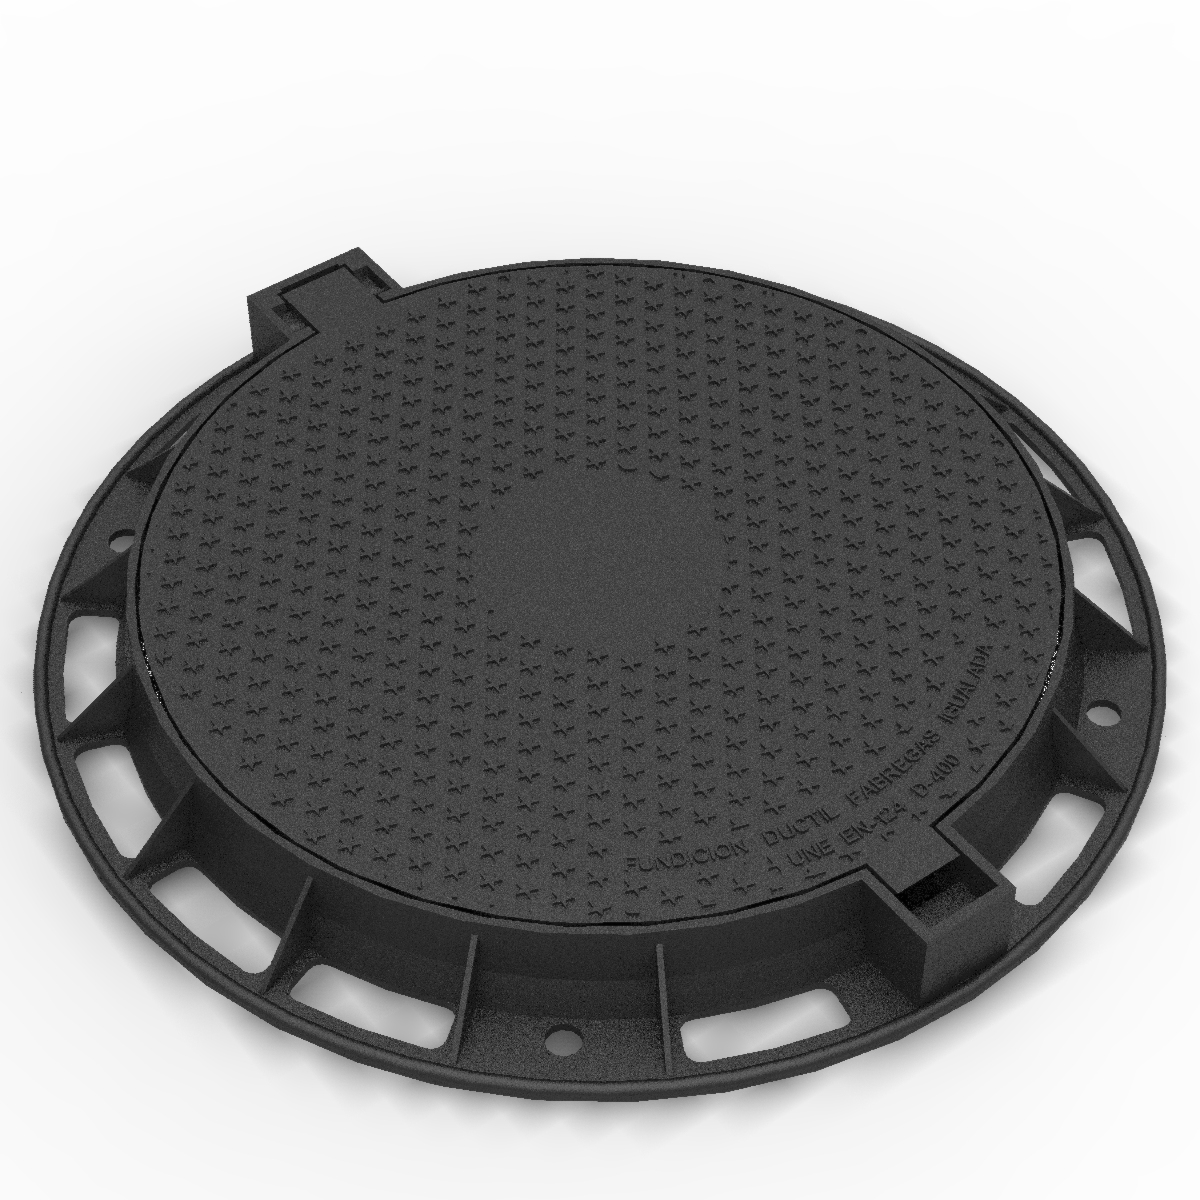 Circular articulated and folding Manhole cover and frame R-1 D-400